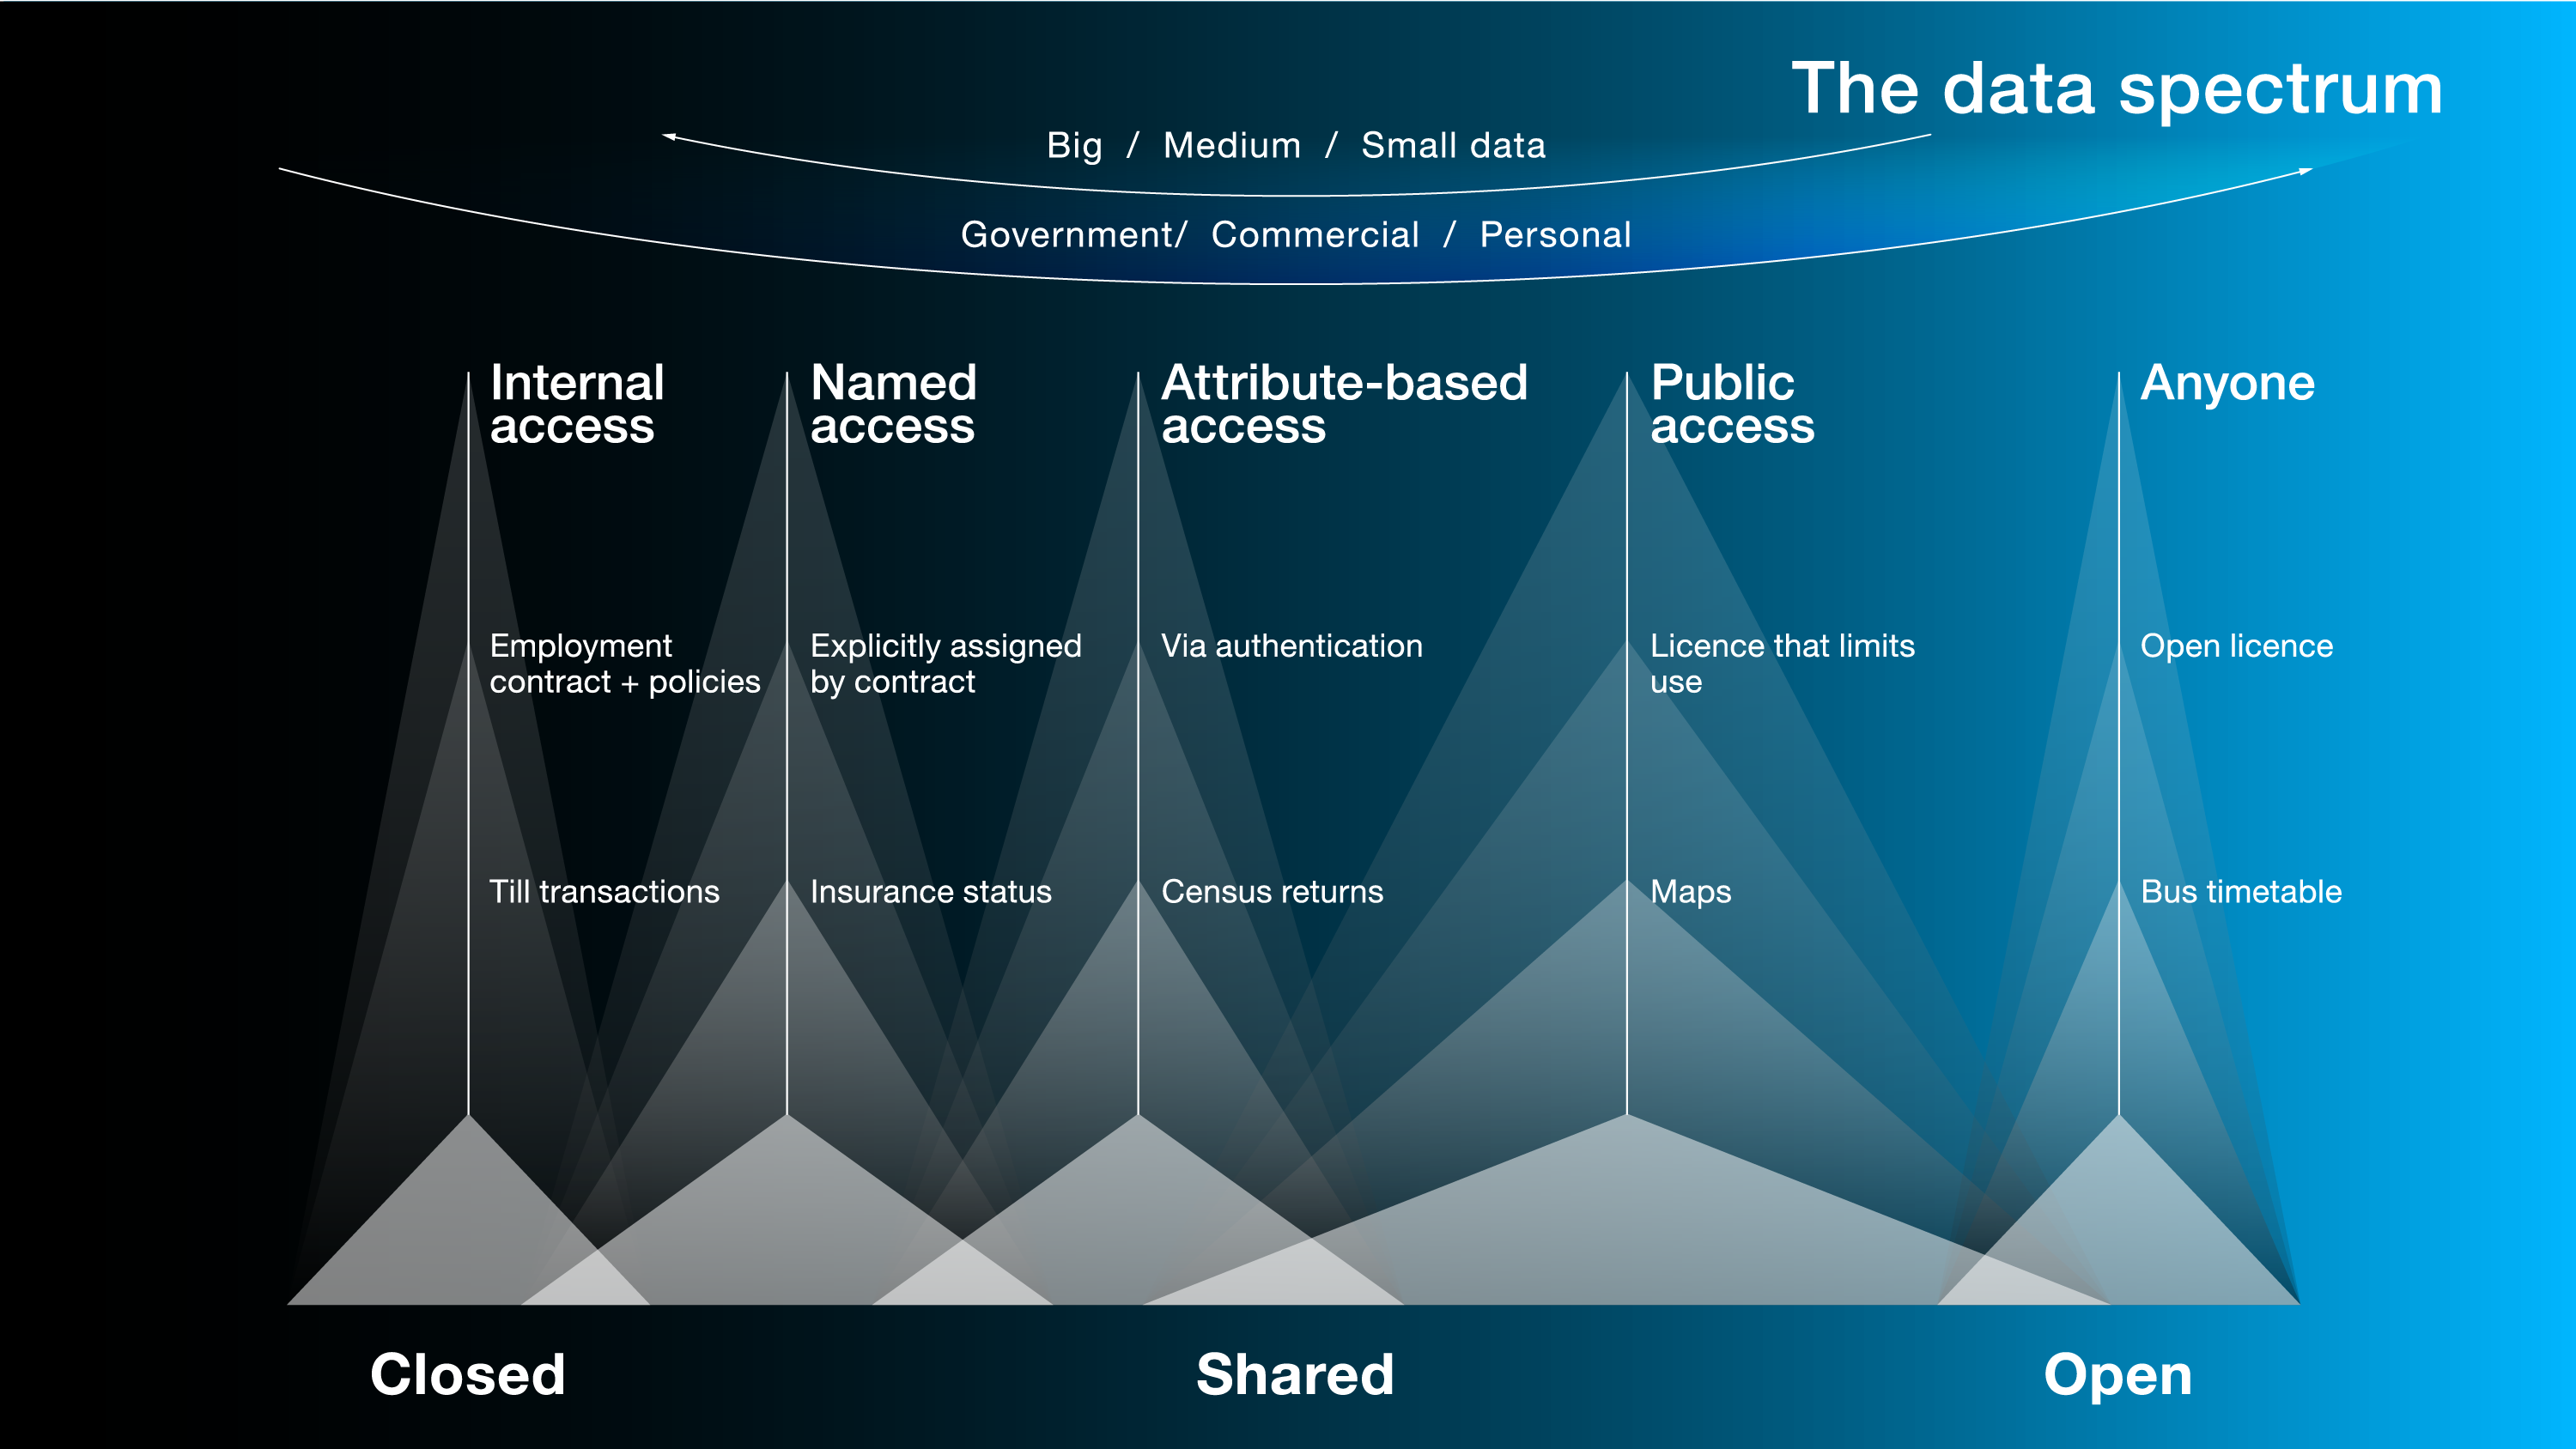 Closed, shared, open data: what's in a name?